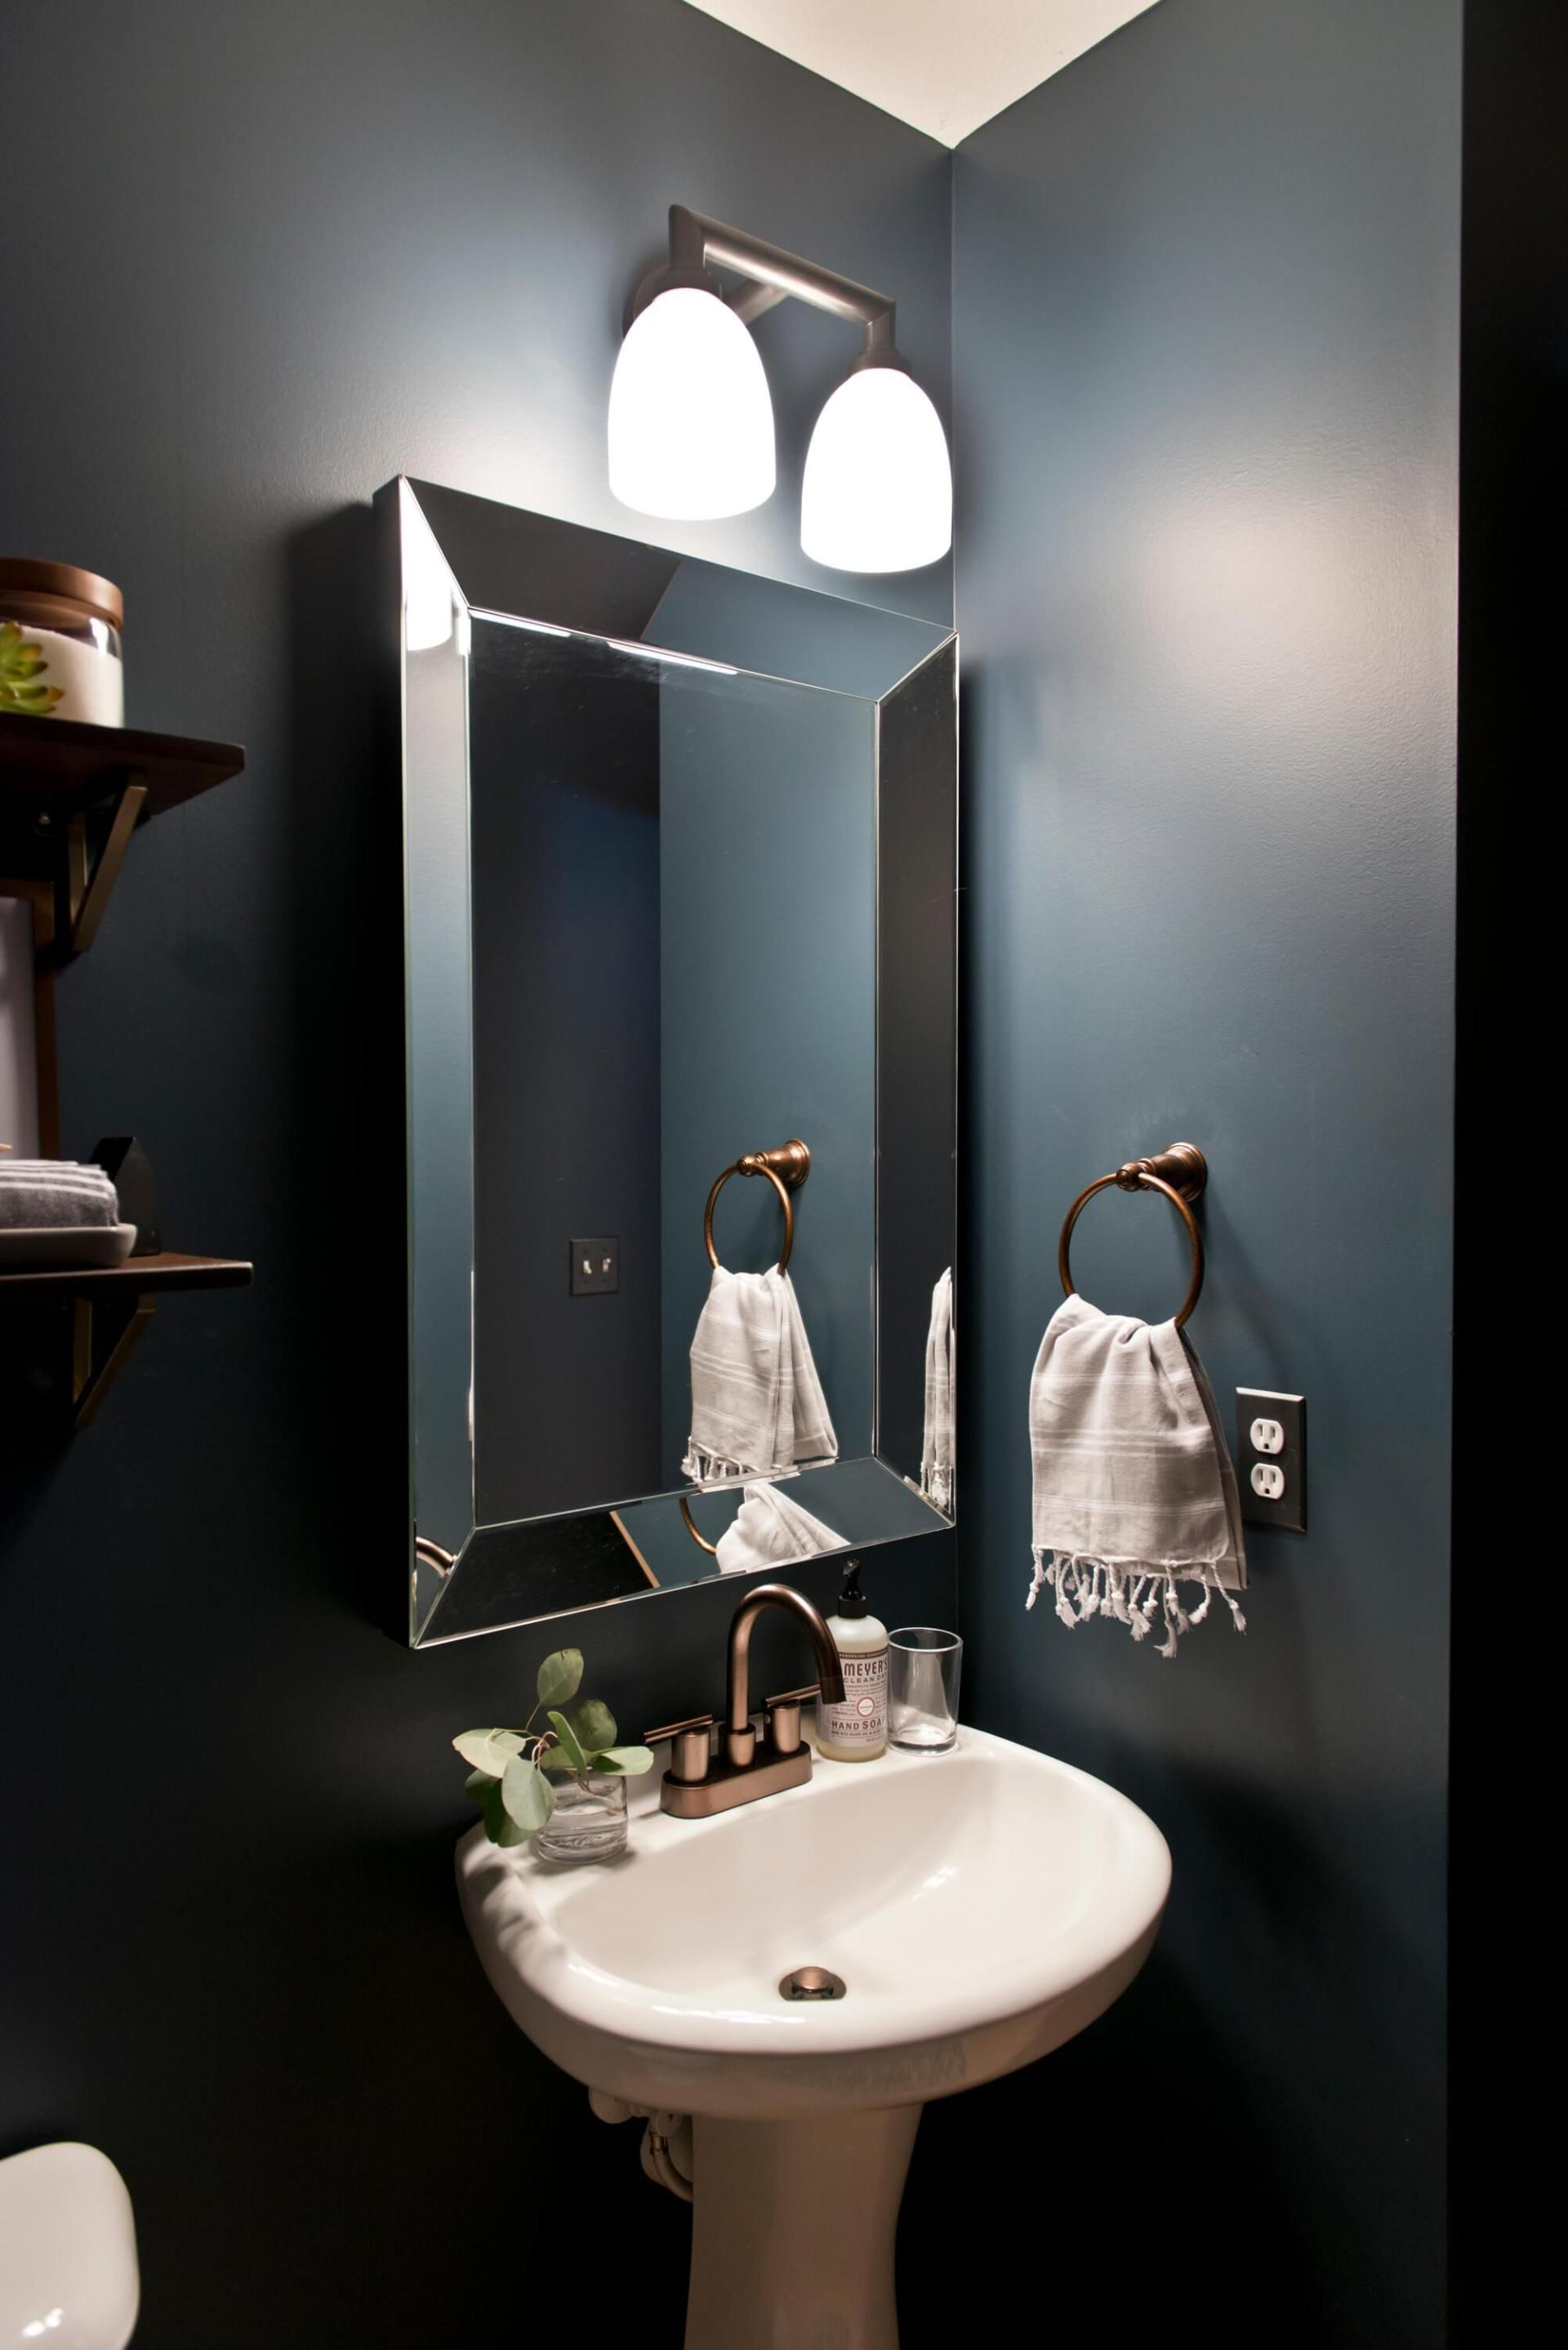 32 Best Small Bathroom Design Ideas And Decorations For 2020: 12+ Best Powder Room Ideas & Designs For Your House 2020